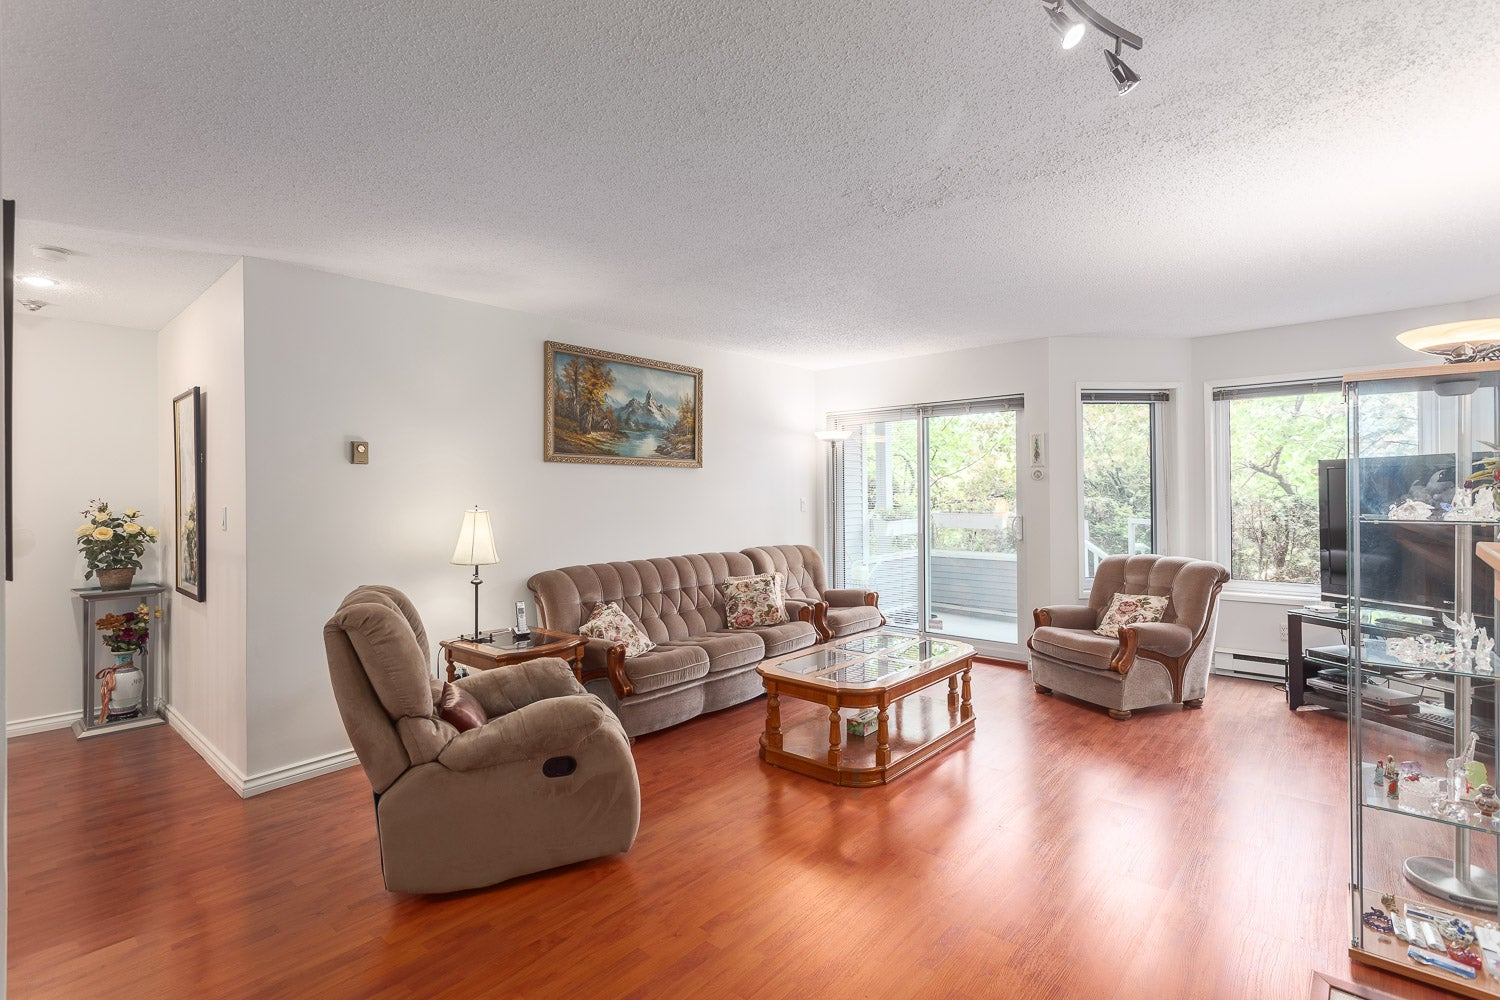 101 4696 W 10TH AVENUE - Point Grey Apartment/Condo for sale, 2 Bedrooms (R2203906) #20